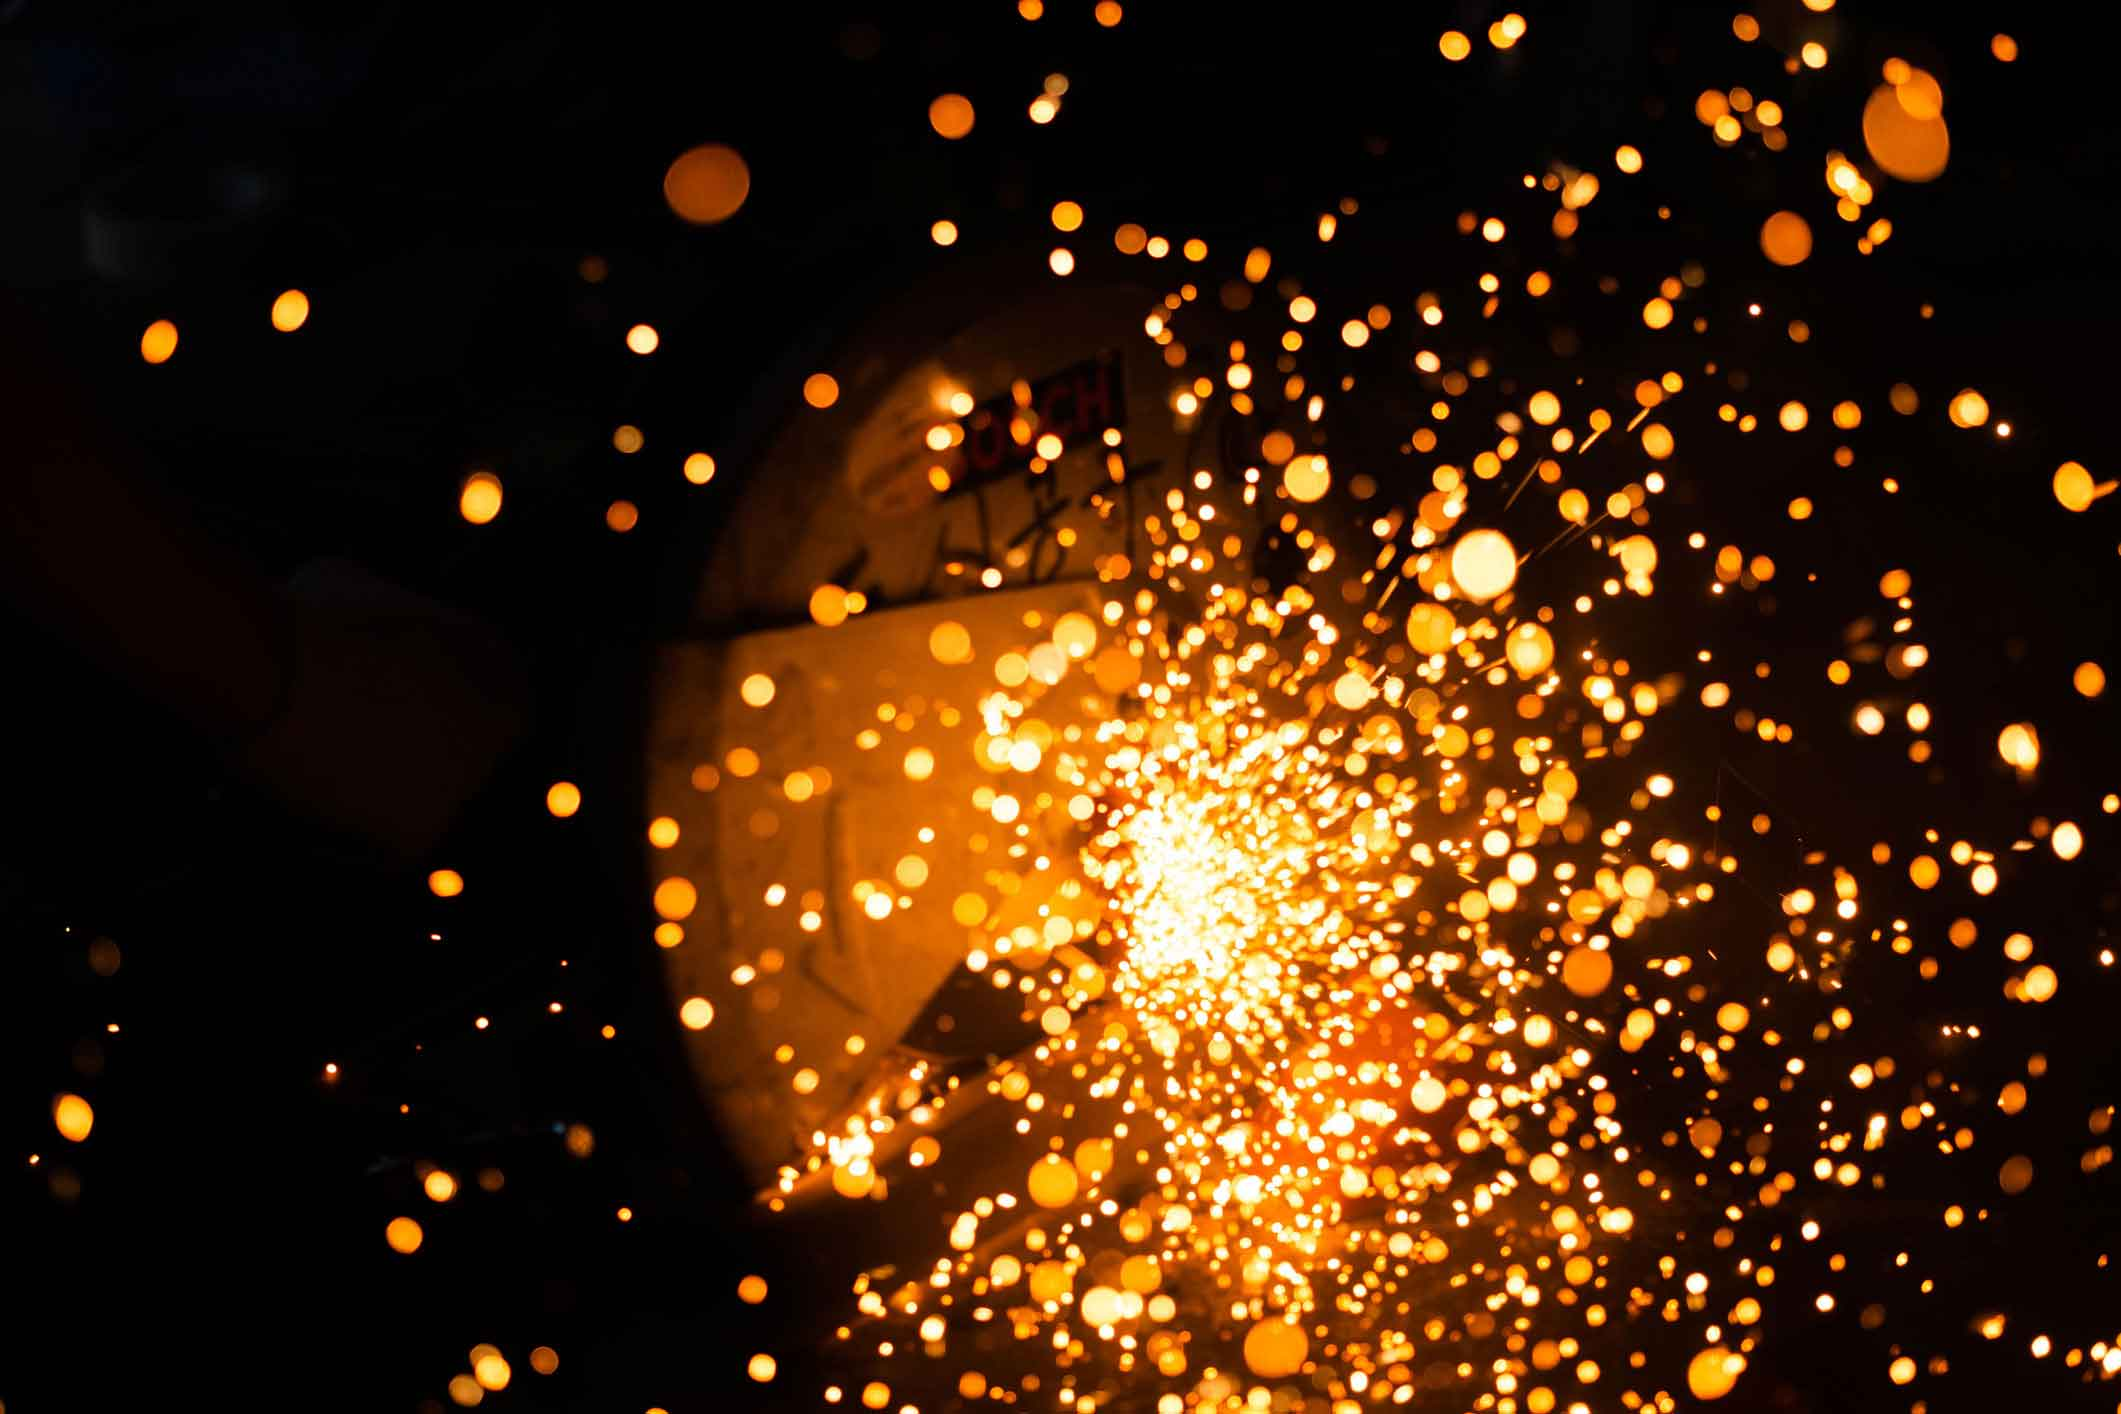 Orange sparks from welding shop or machine shop representing welding pollutants.